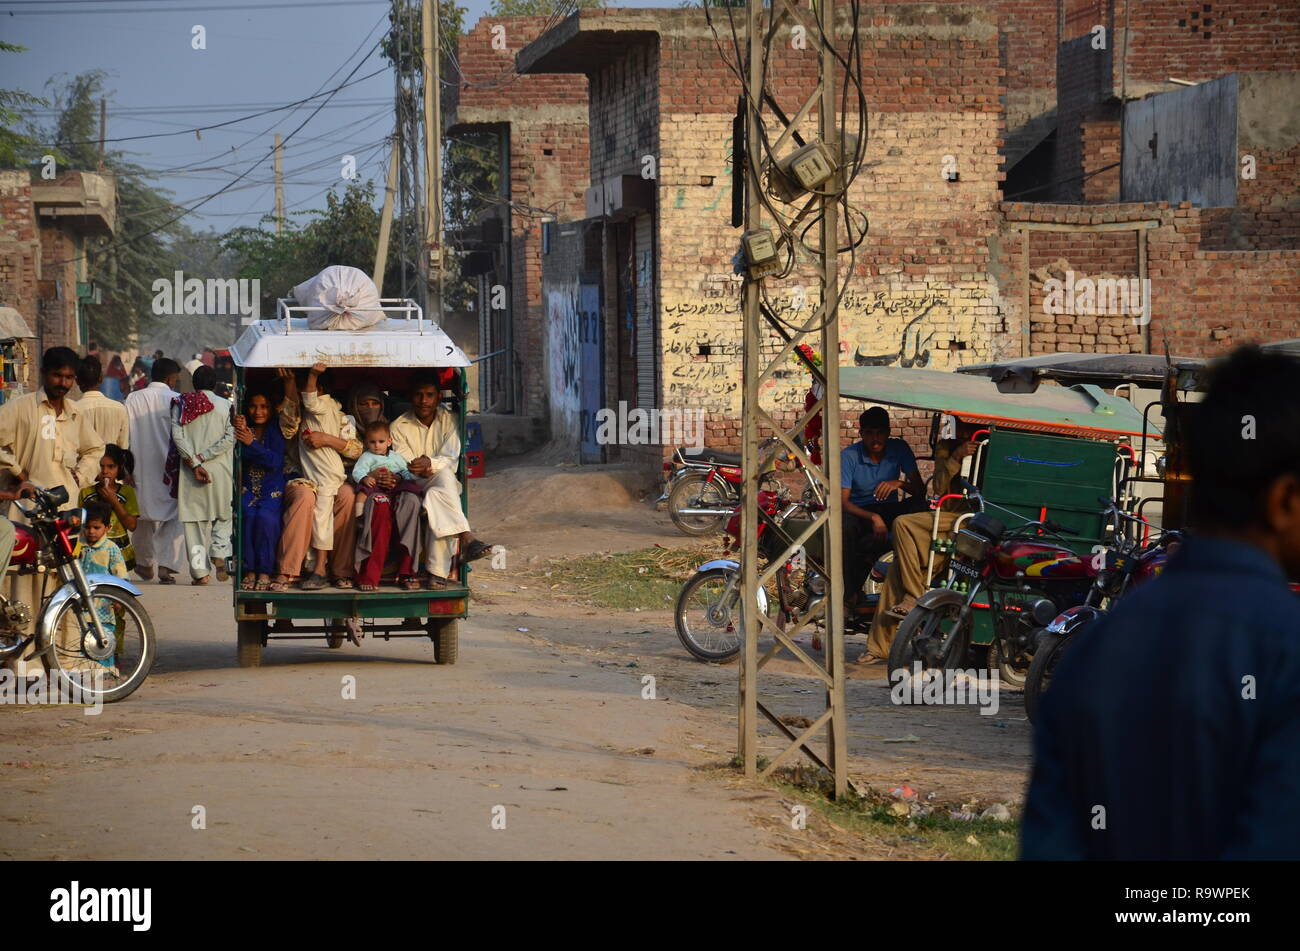 A motorcycle rikshaw or tukuk with people sitting in it. A view from rural Sindh, Pakistan. Stock Photo